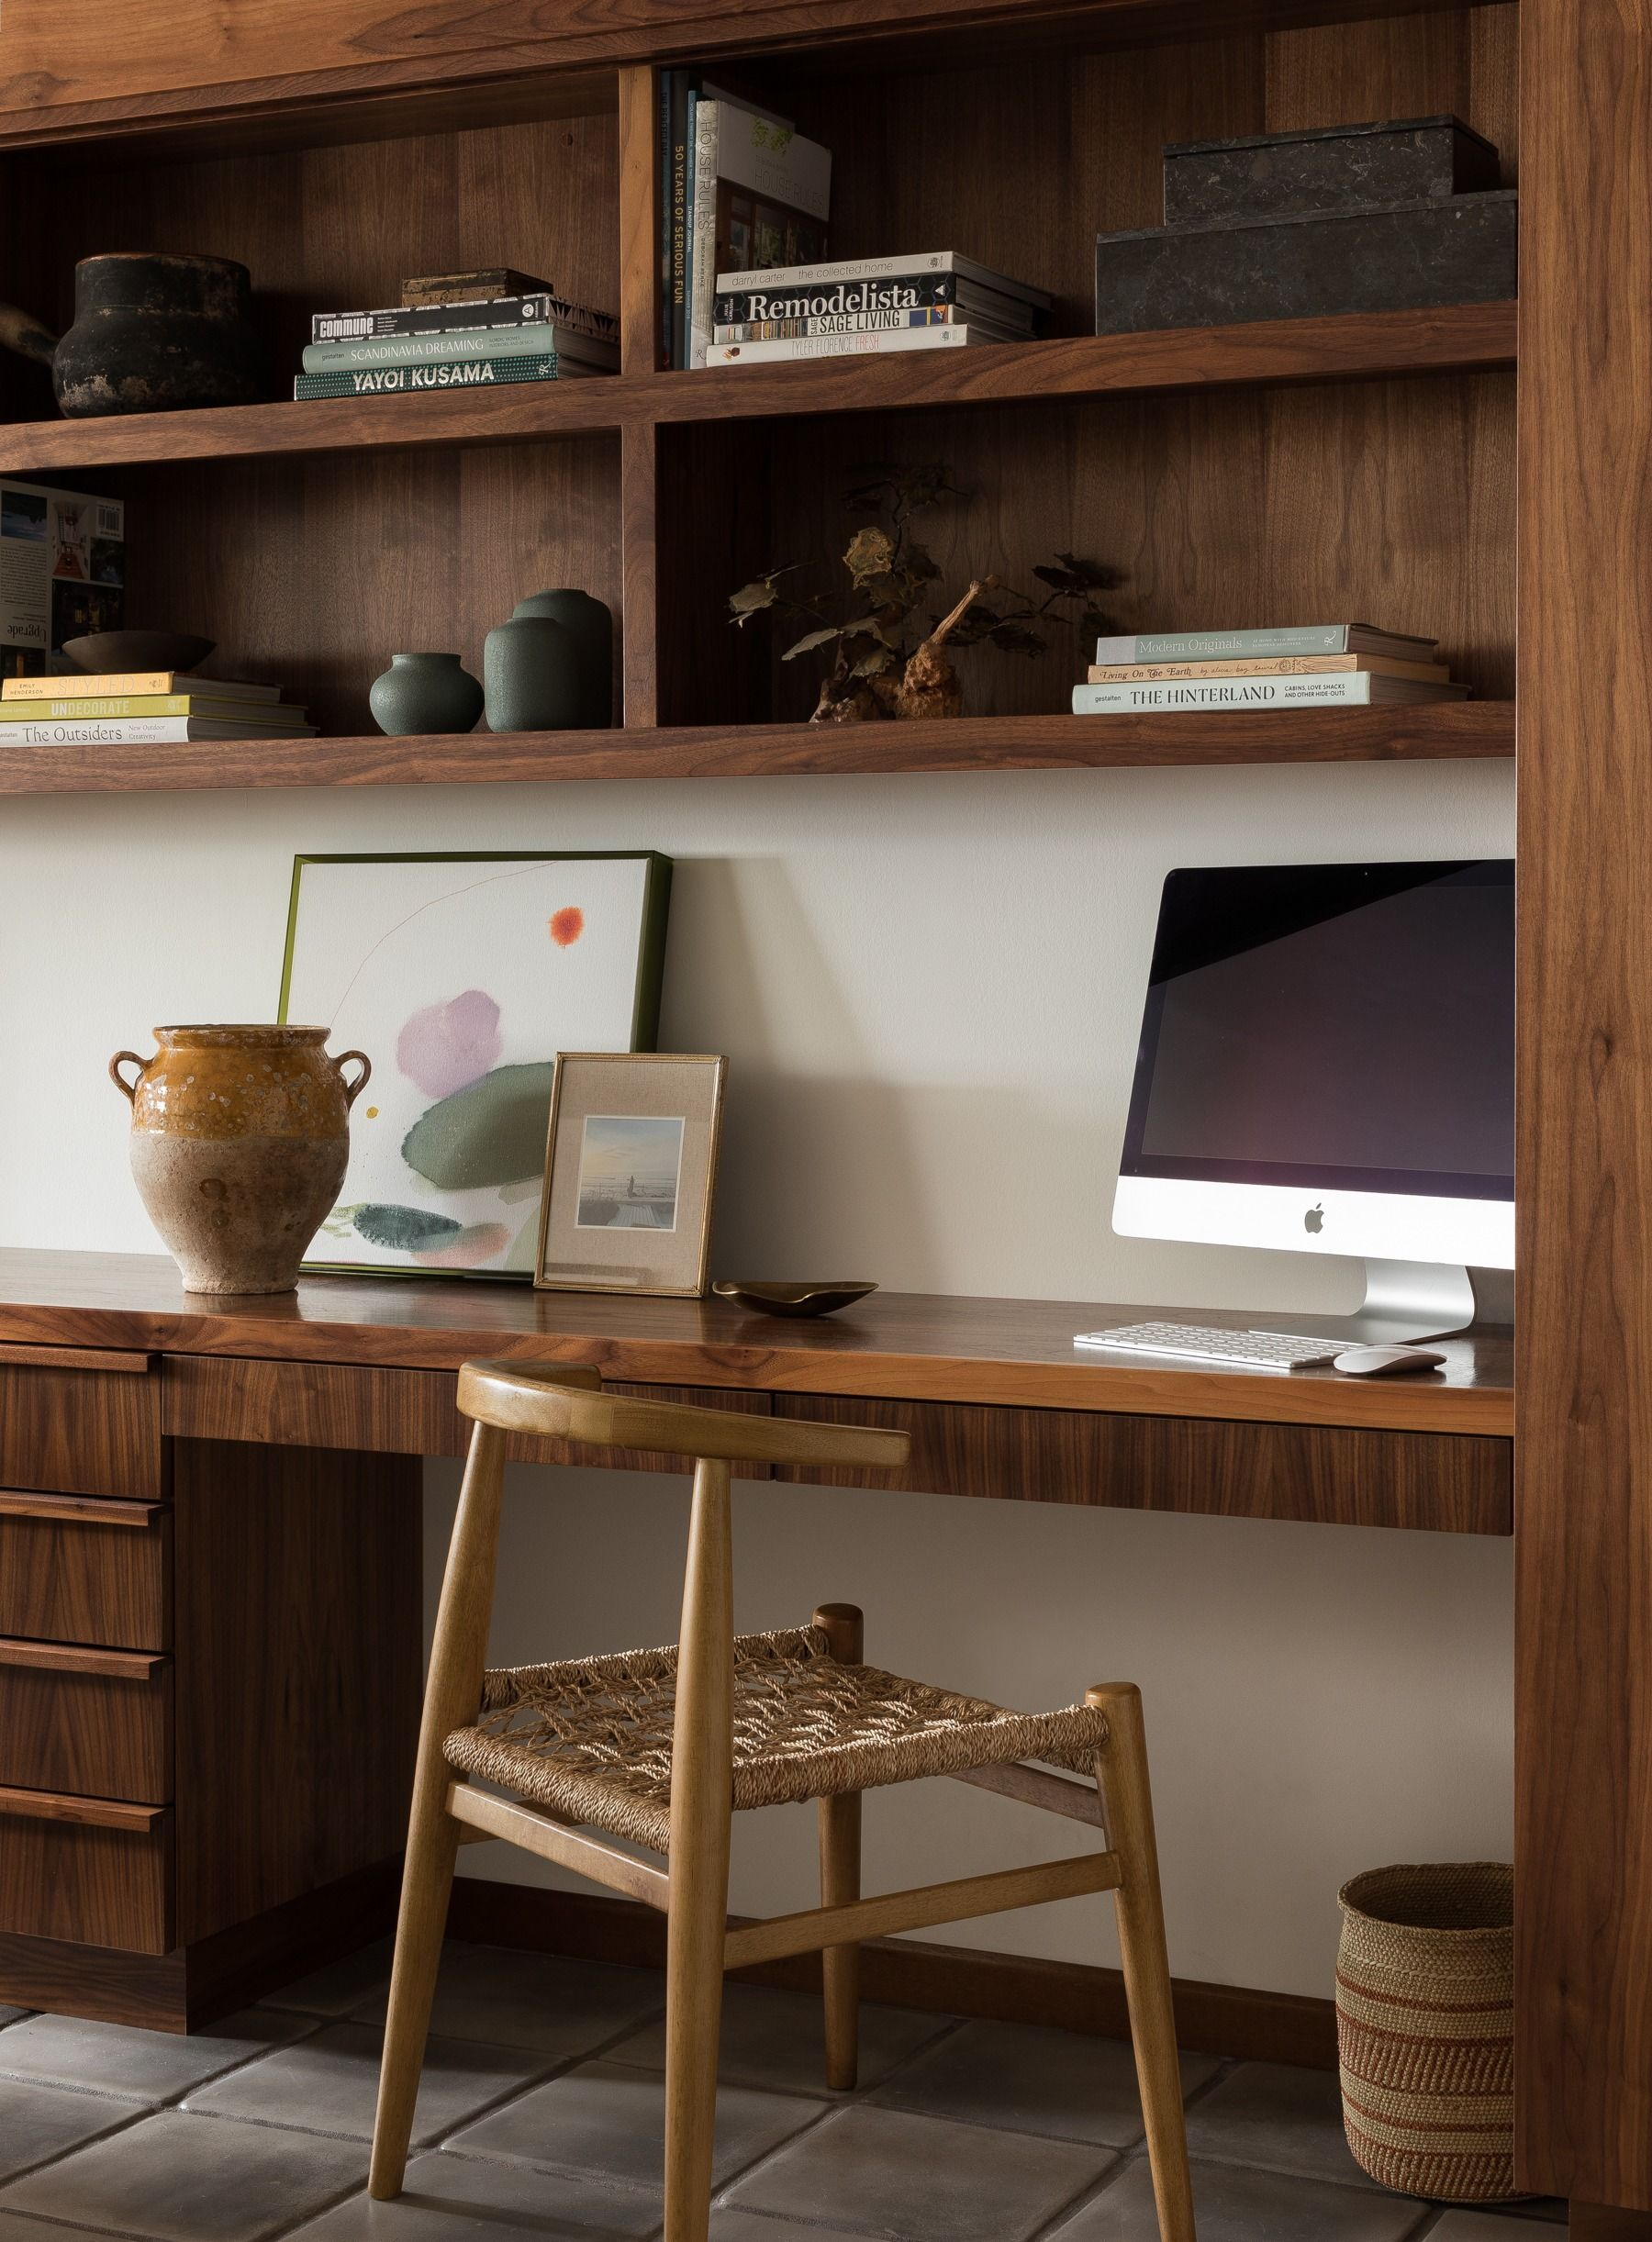 Amazing Wood Stained Built Ins In The Home Office Built In Desk